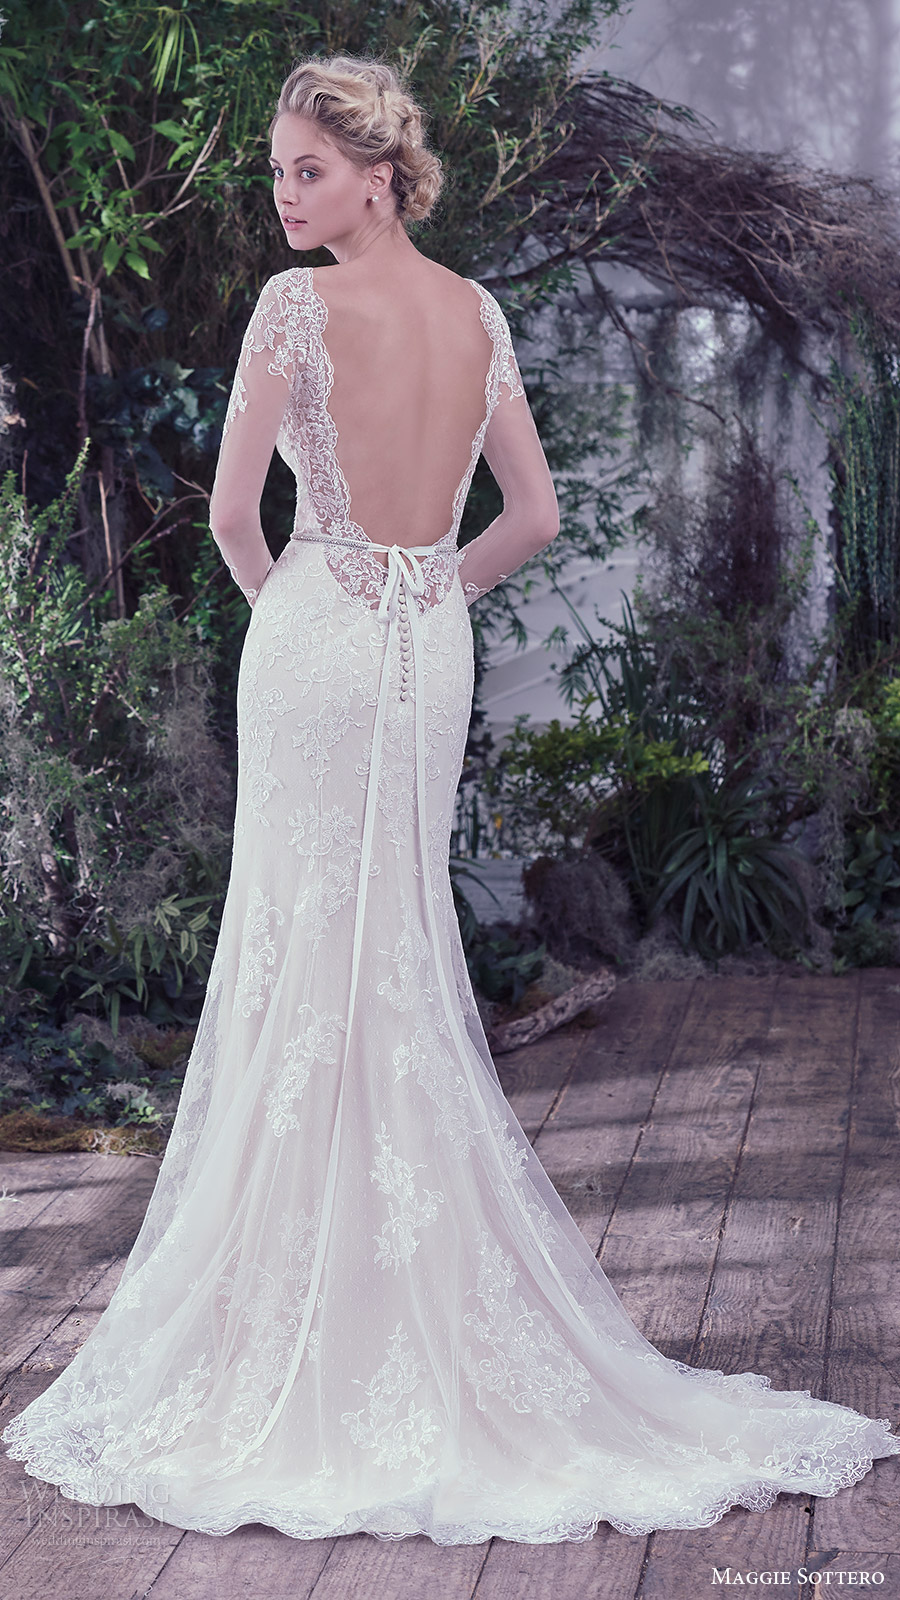 Maggie Sottero Lace Wedding Dress 11